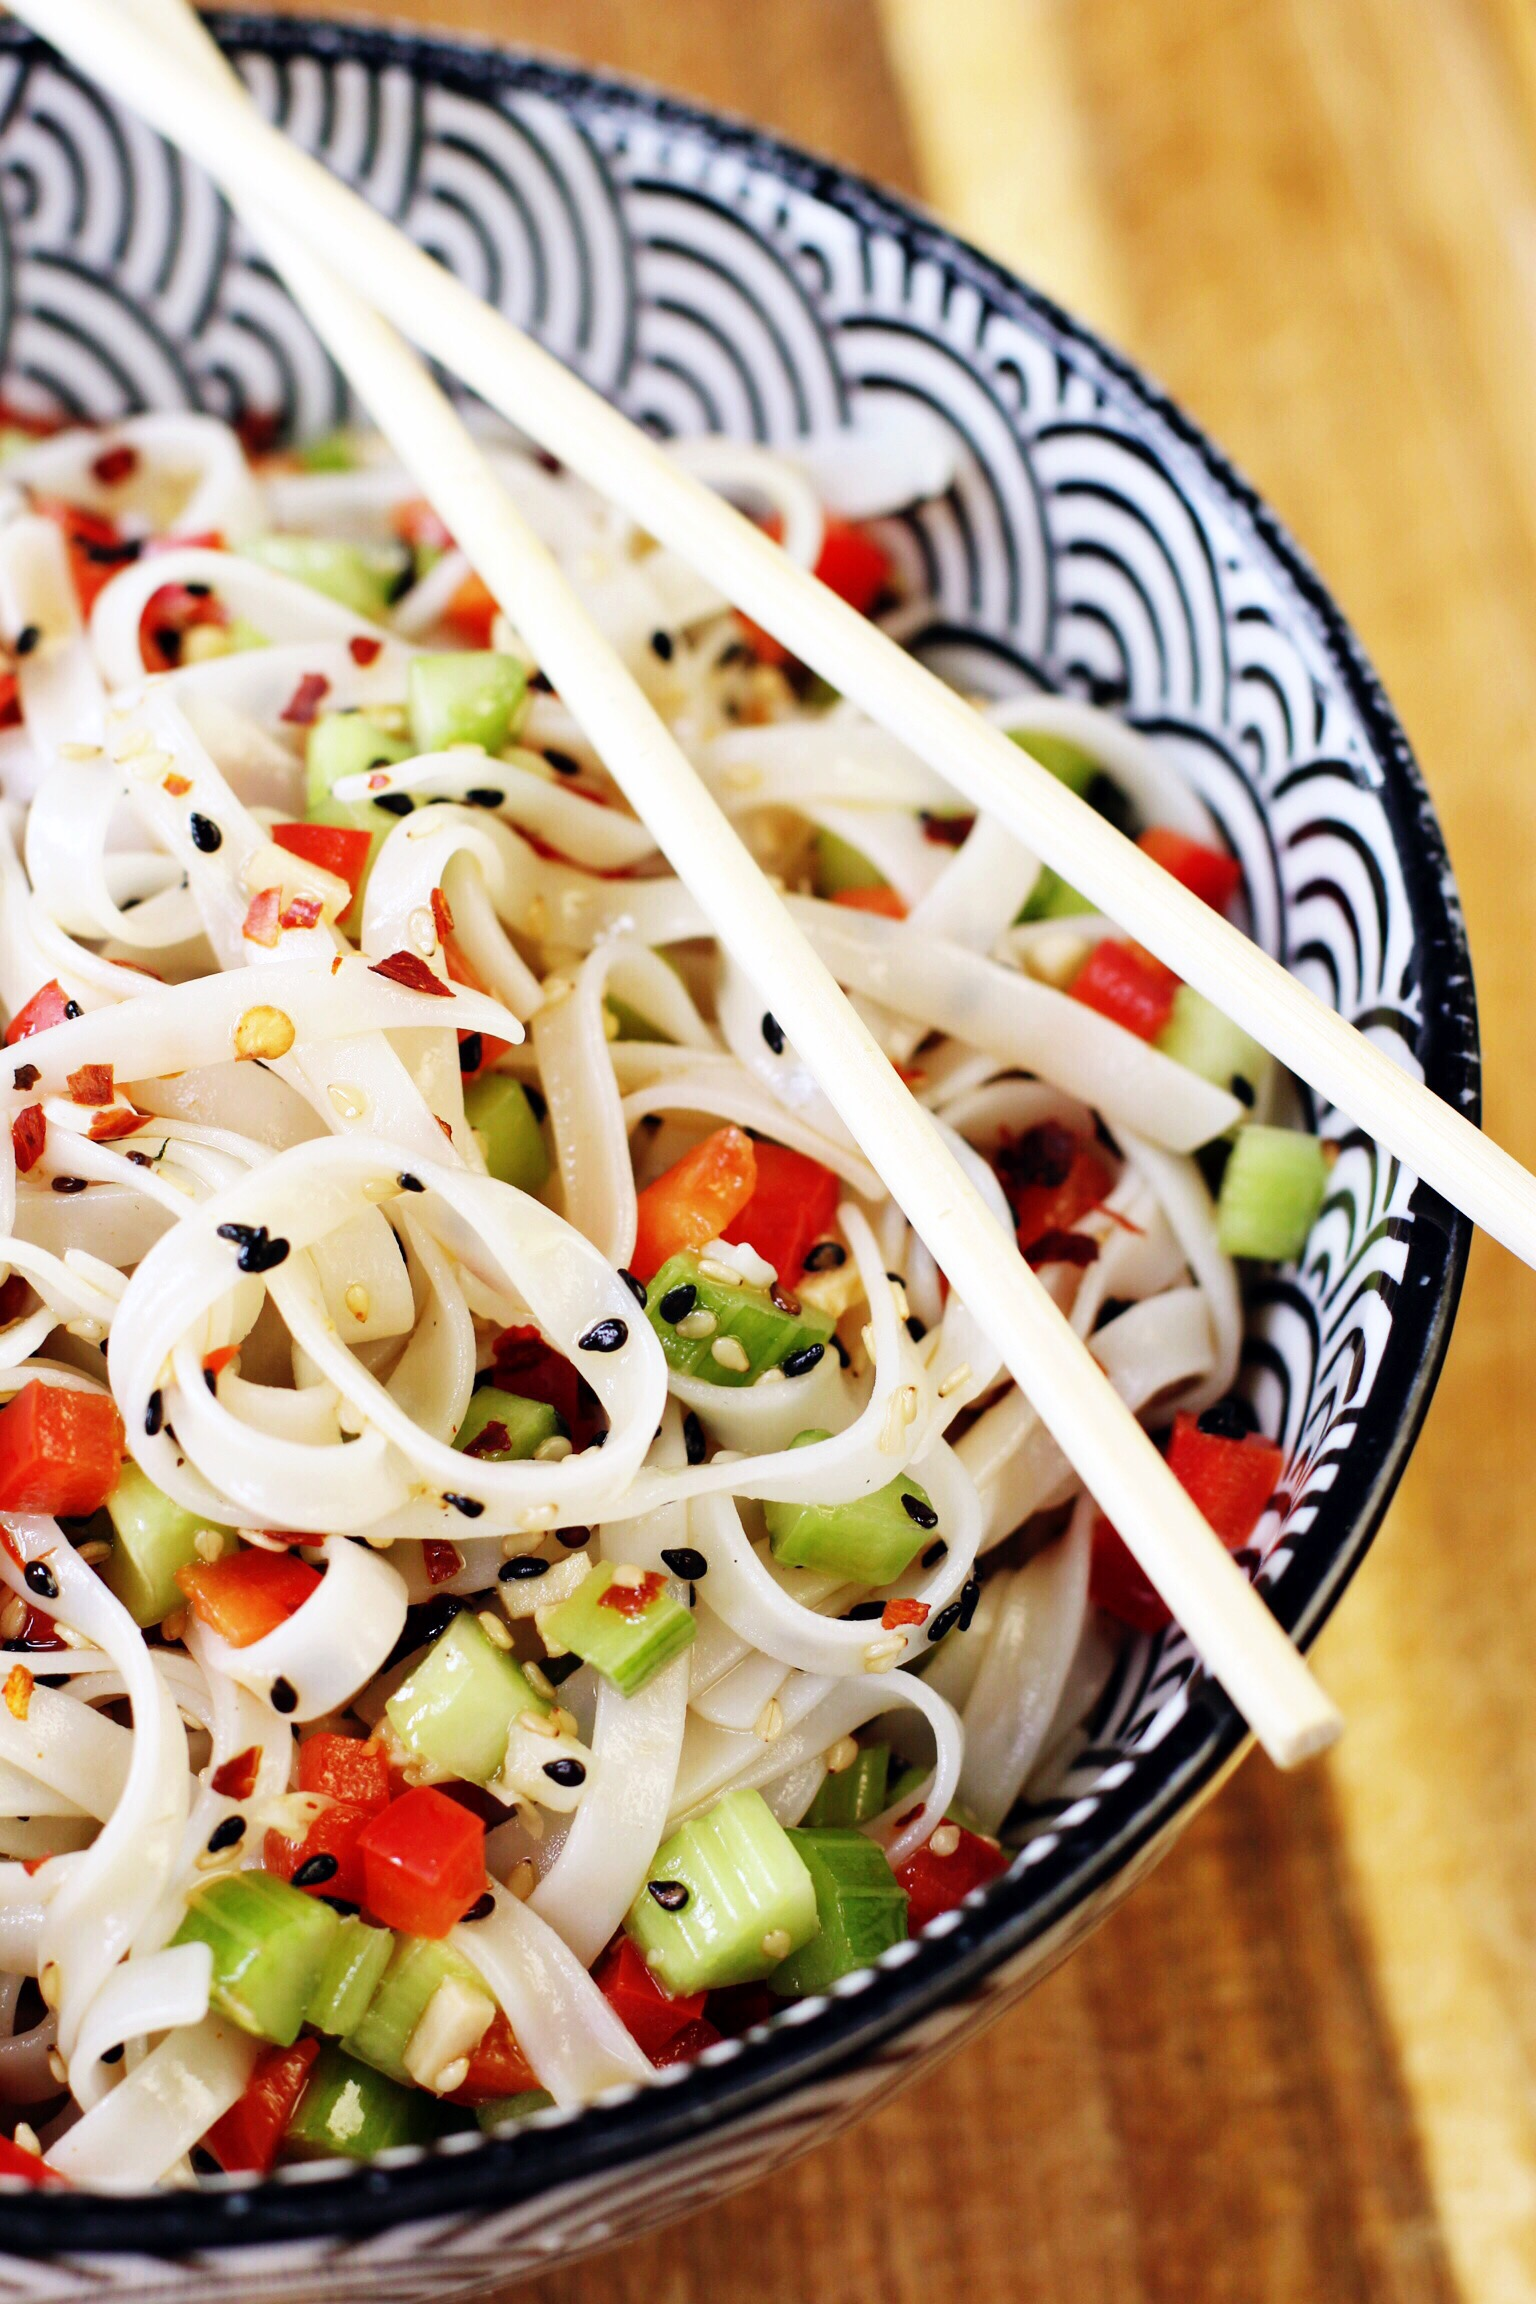 Cool sesame noodles with chili flakes - The Pastiche